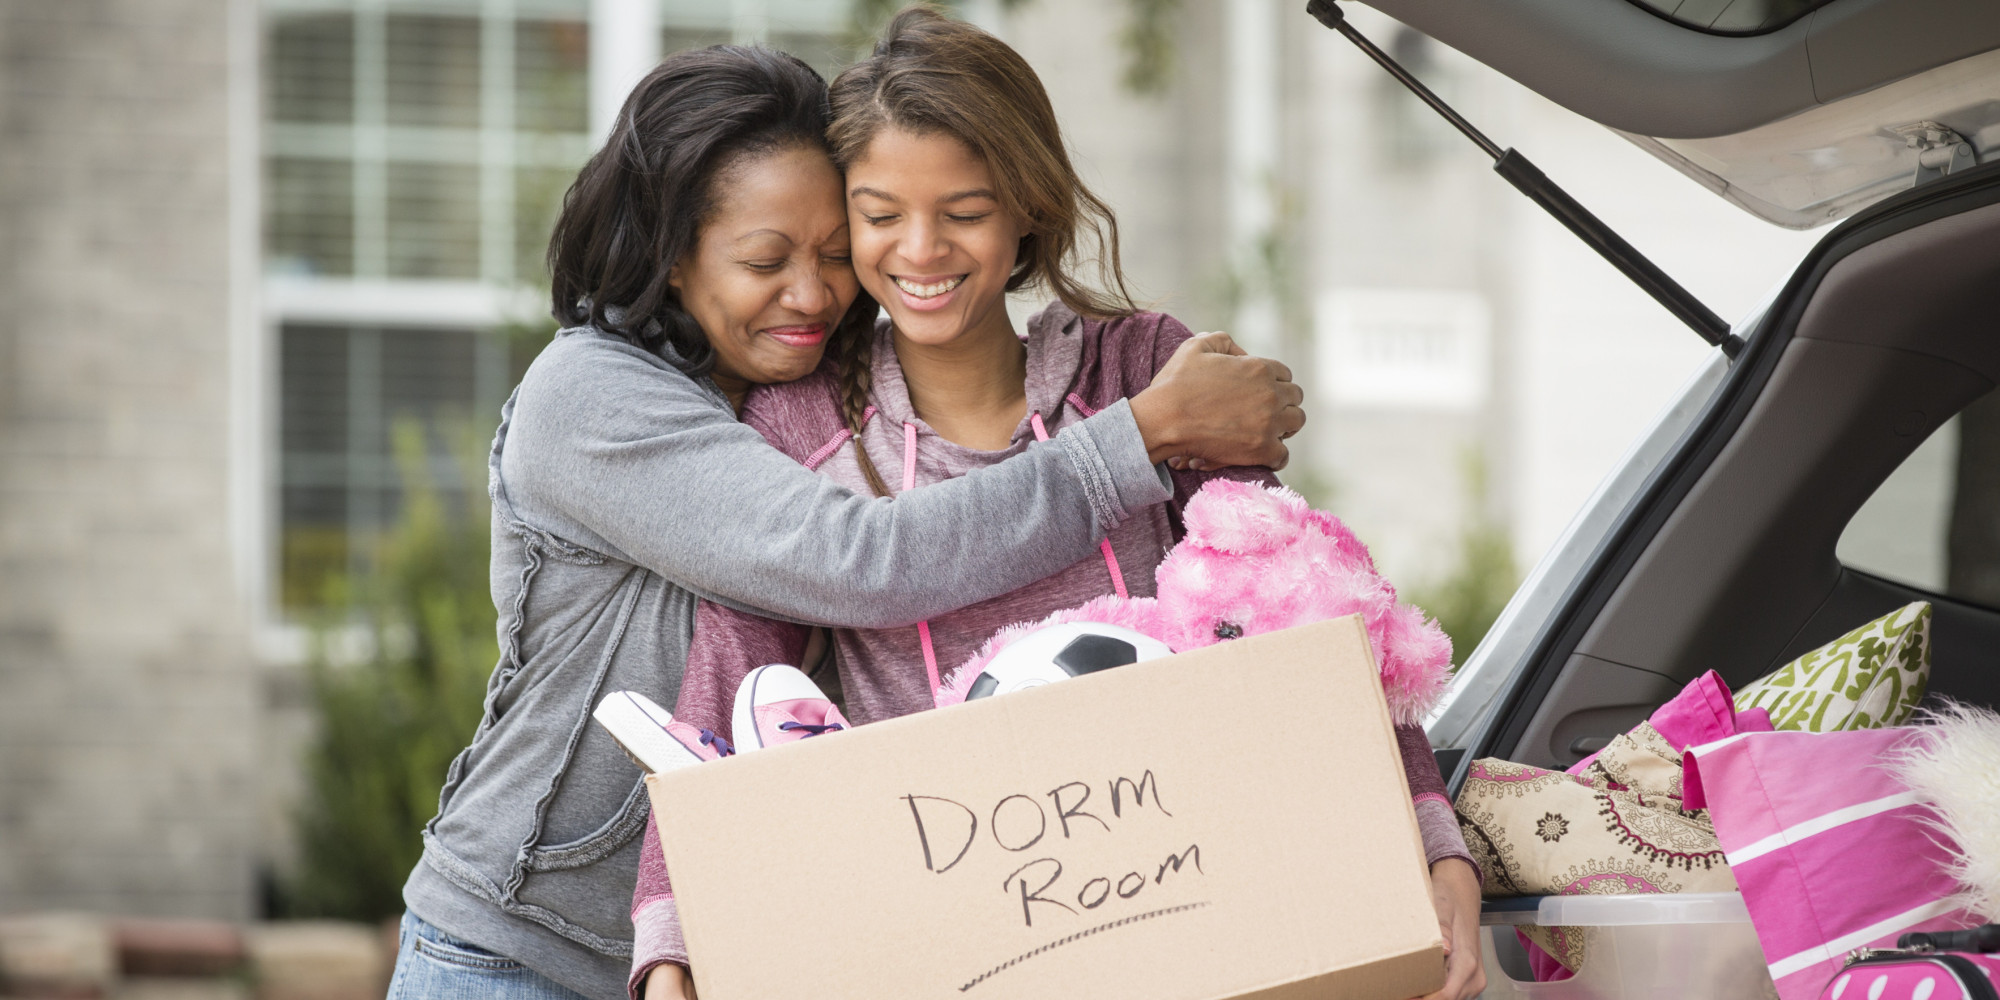 List: A Parents' Guide to Surviving the College Drop-Off